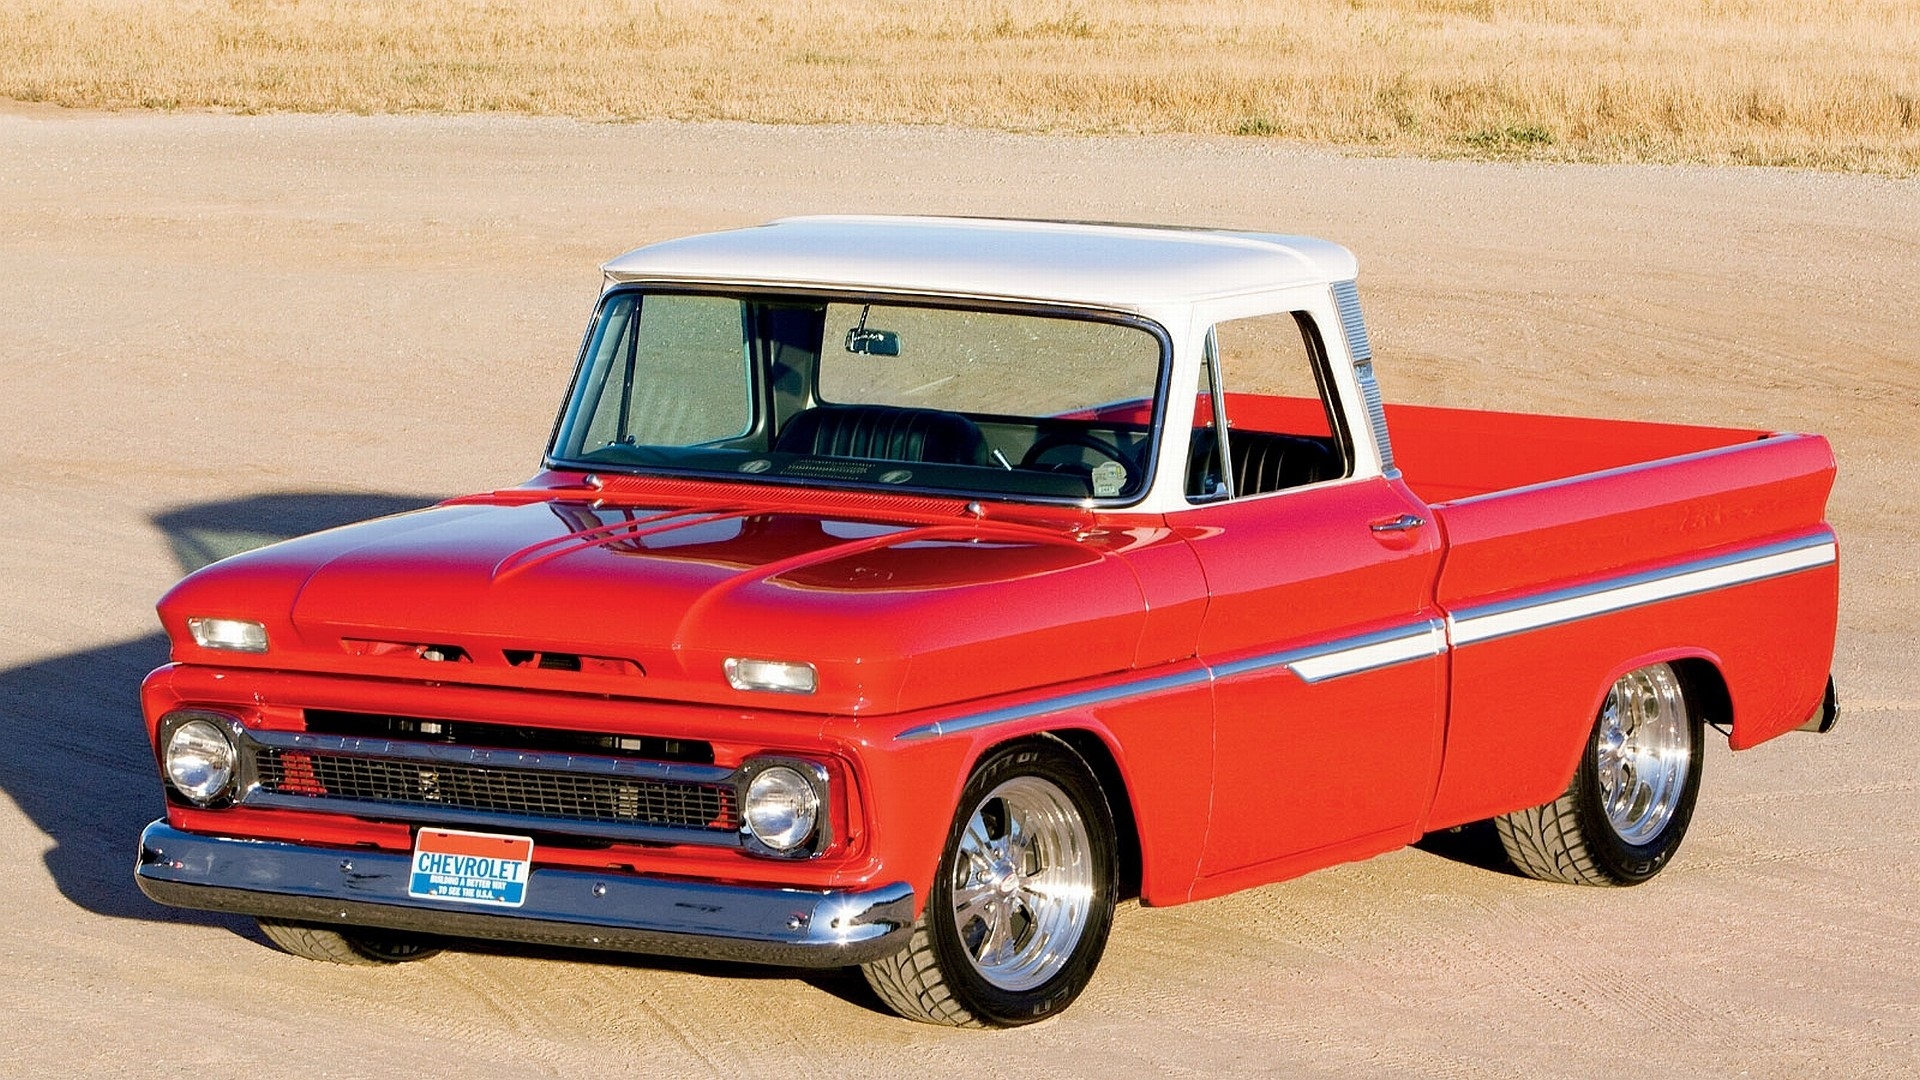 1920x1080 early 60s Chevy · Chevrolet TrucksDesktop WallpapersDesktop Background  Images